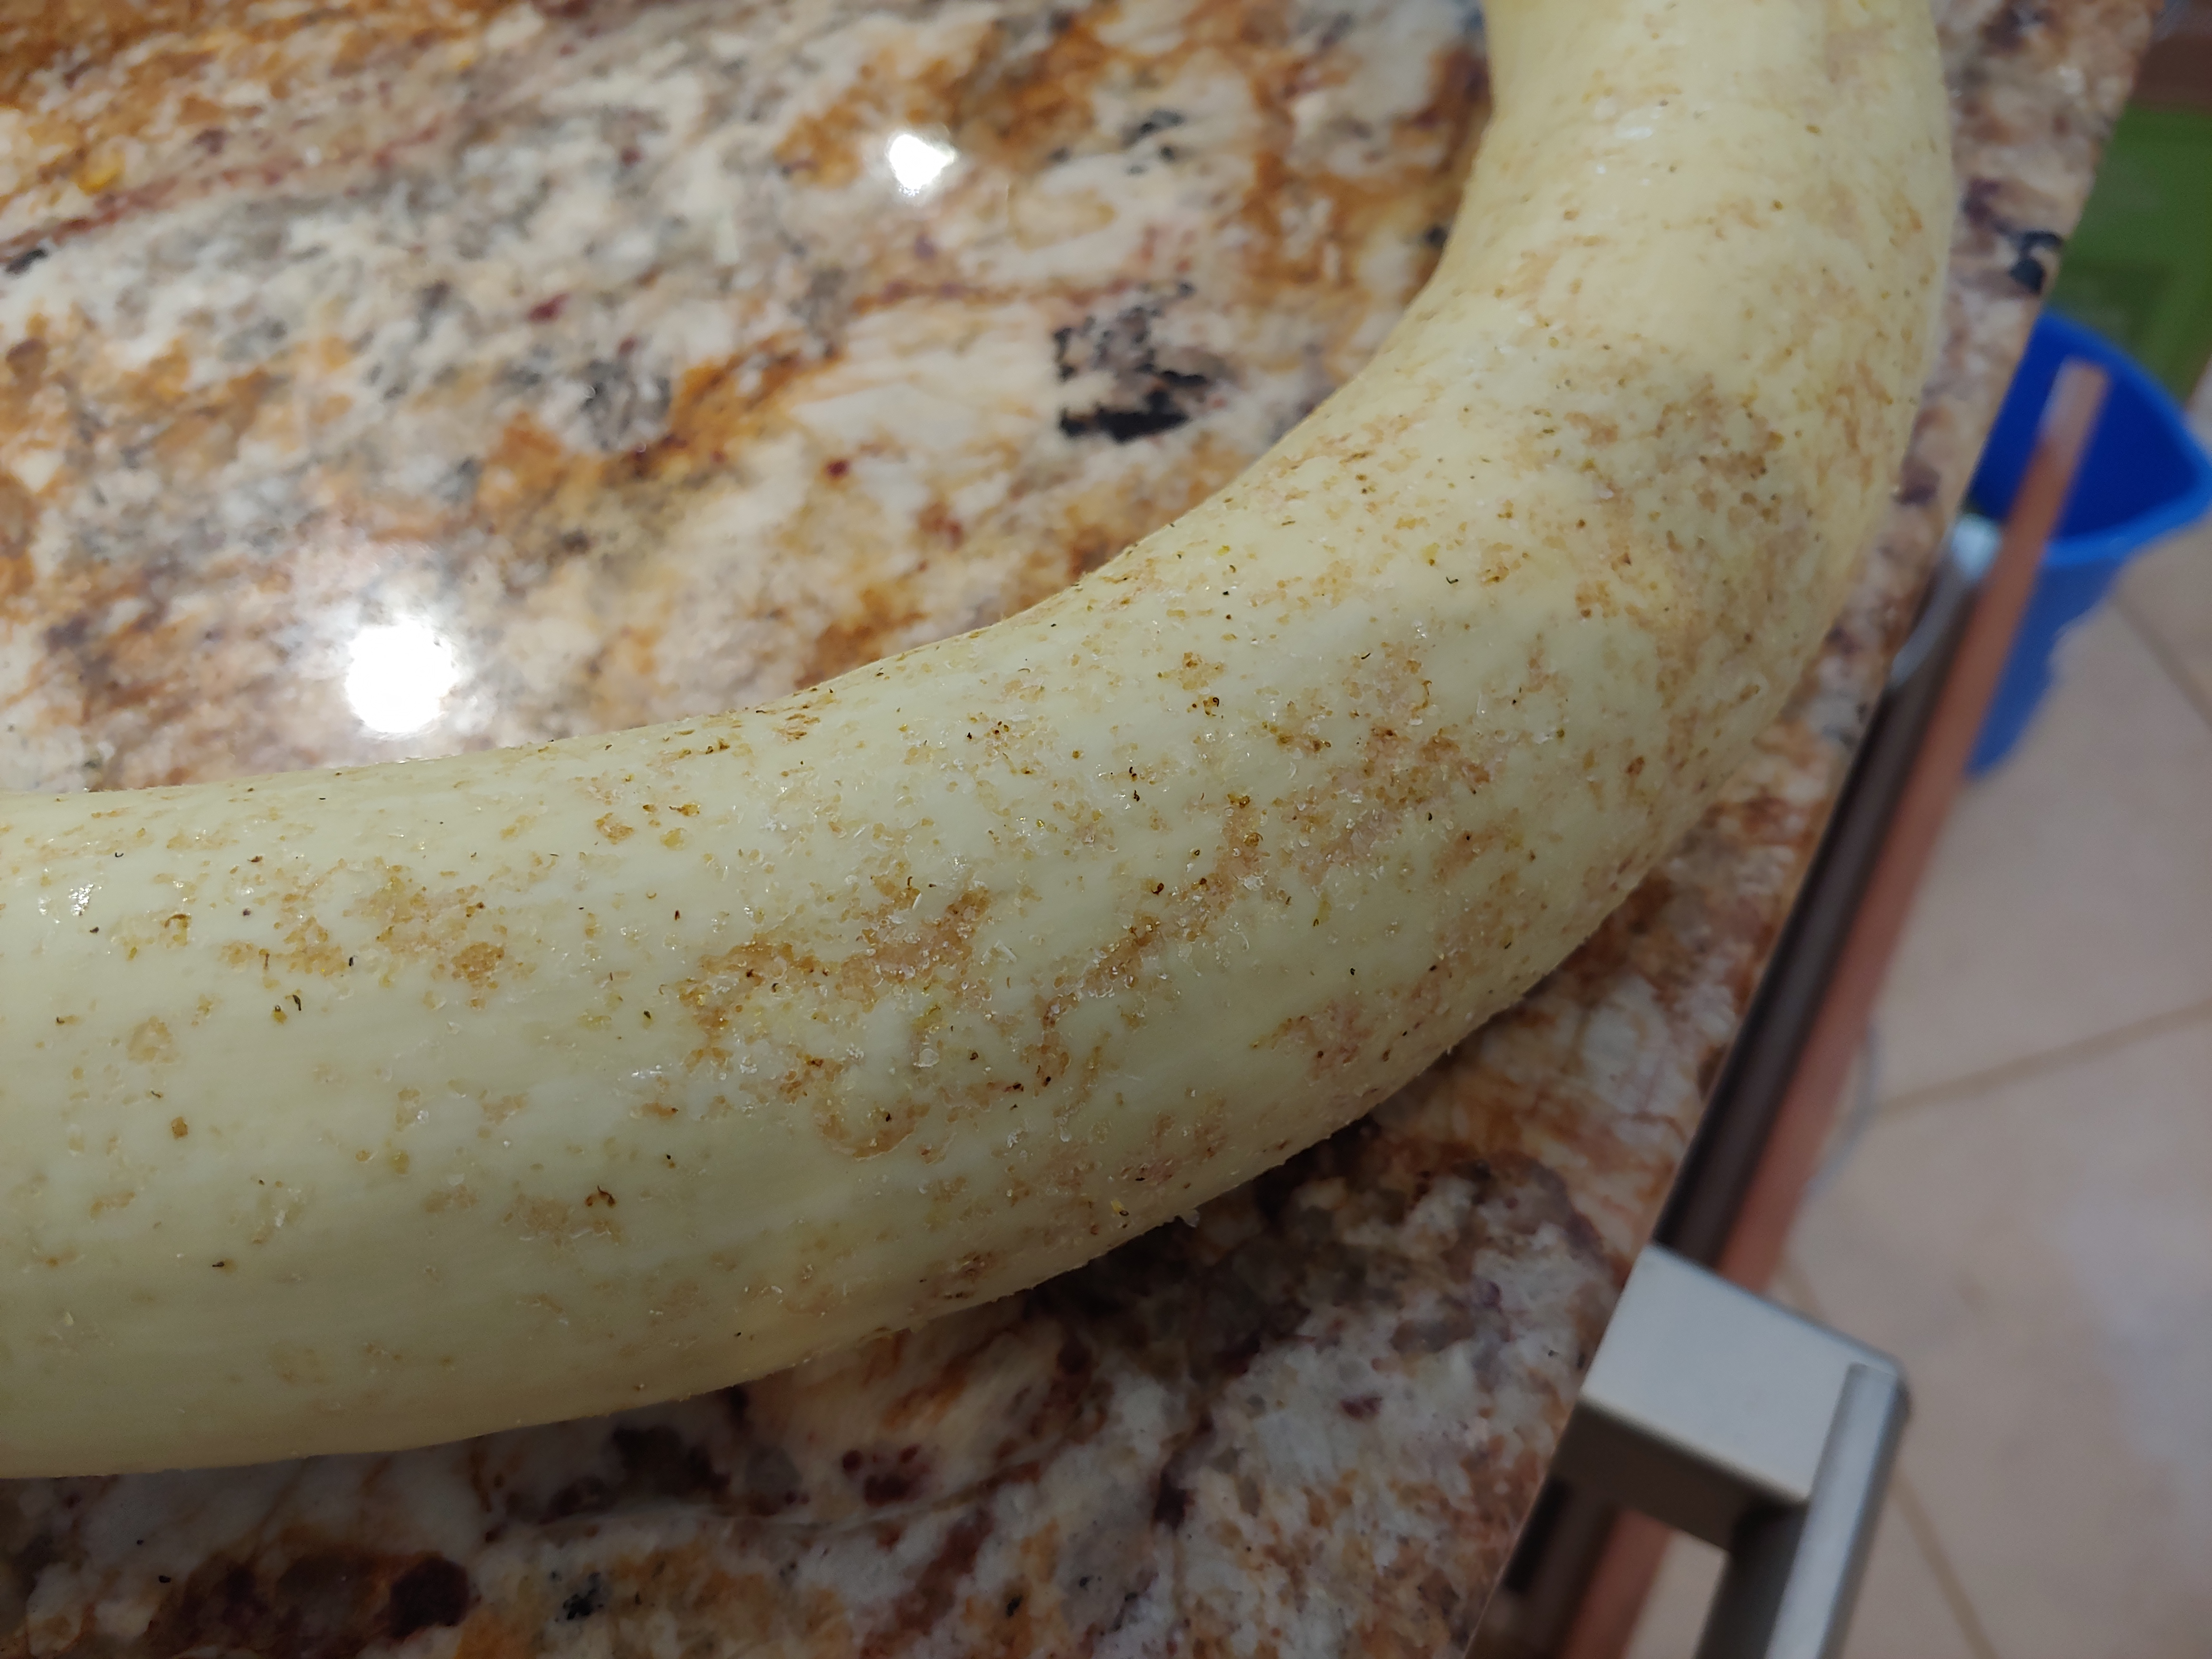 Tromboncino squash with stippling damage